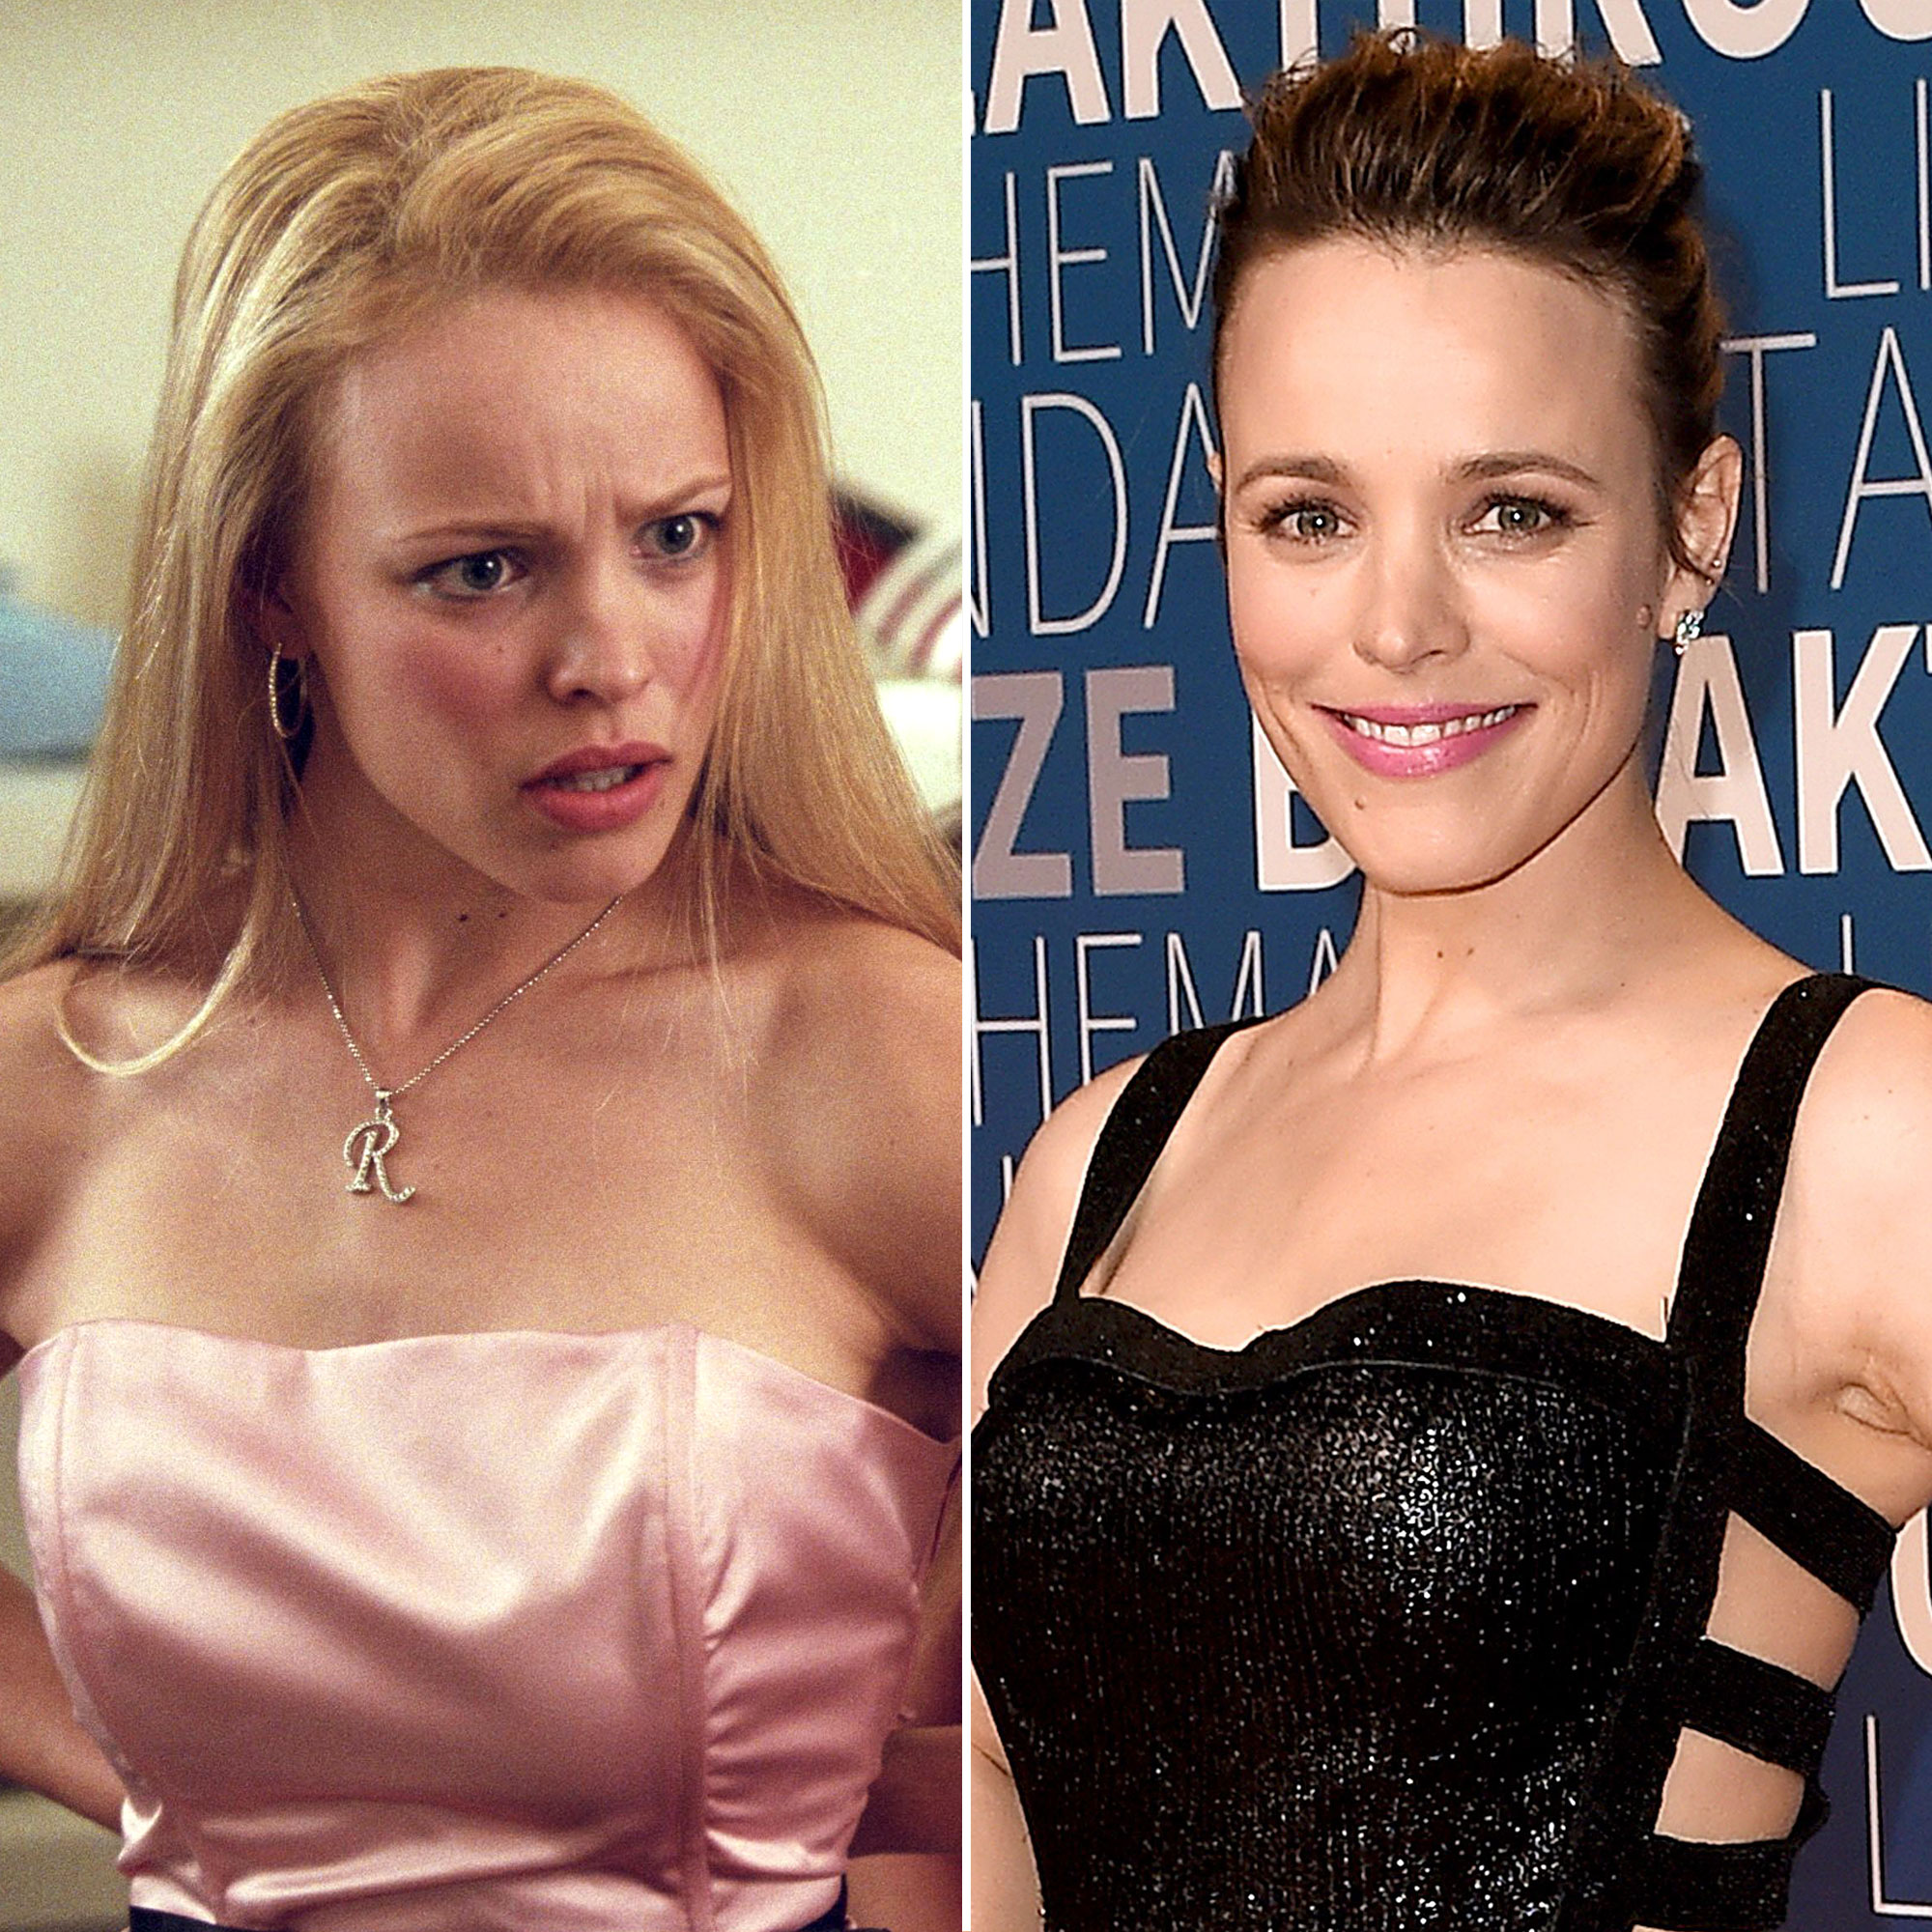 Beauty and rachel mcadams babe today this photo 2